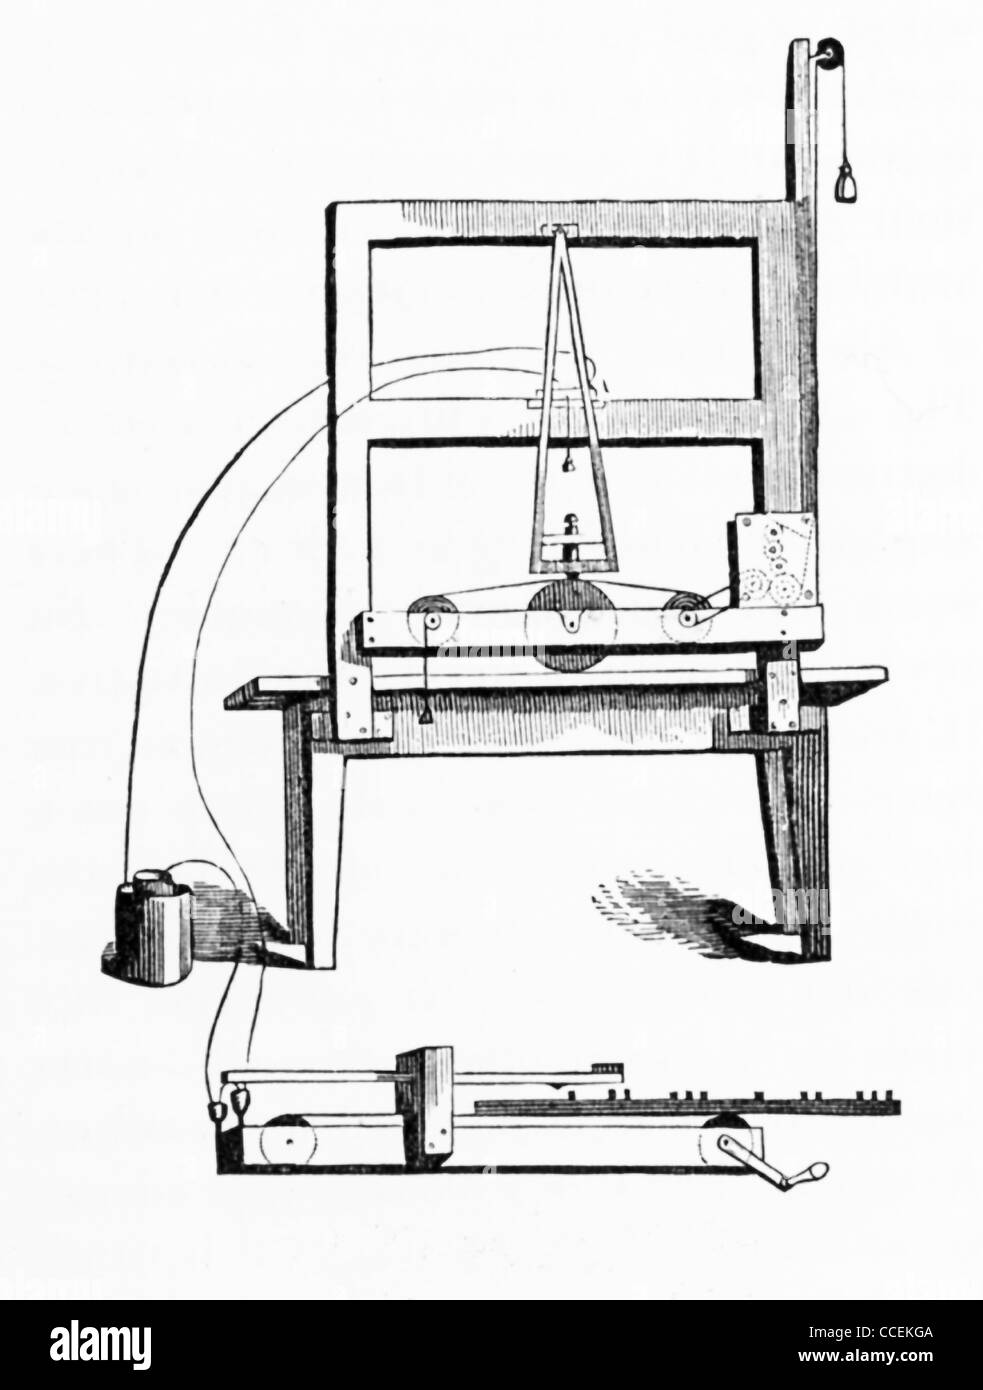 American scientist Samuel Morse patented his invention of an electrical telegraph in 1837—the original here. - Stock Image